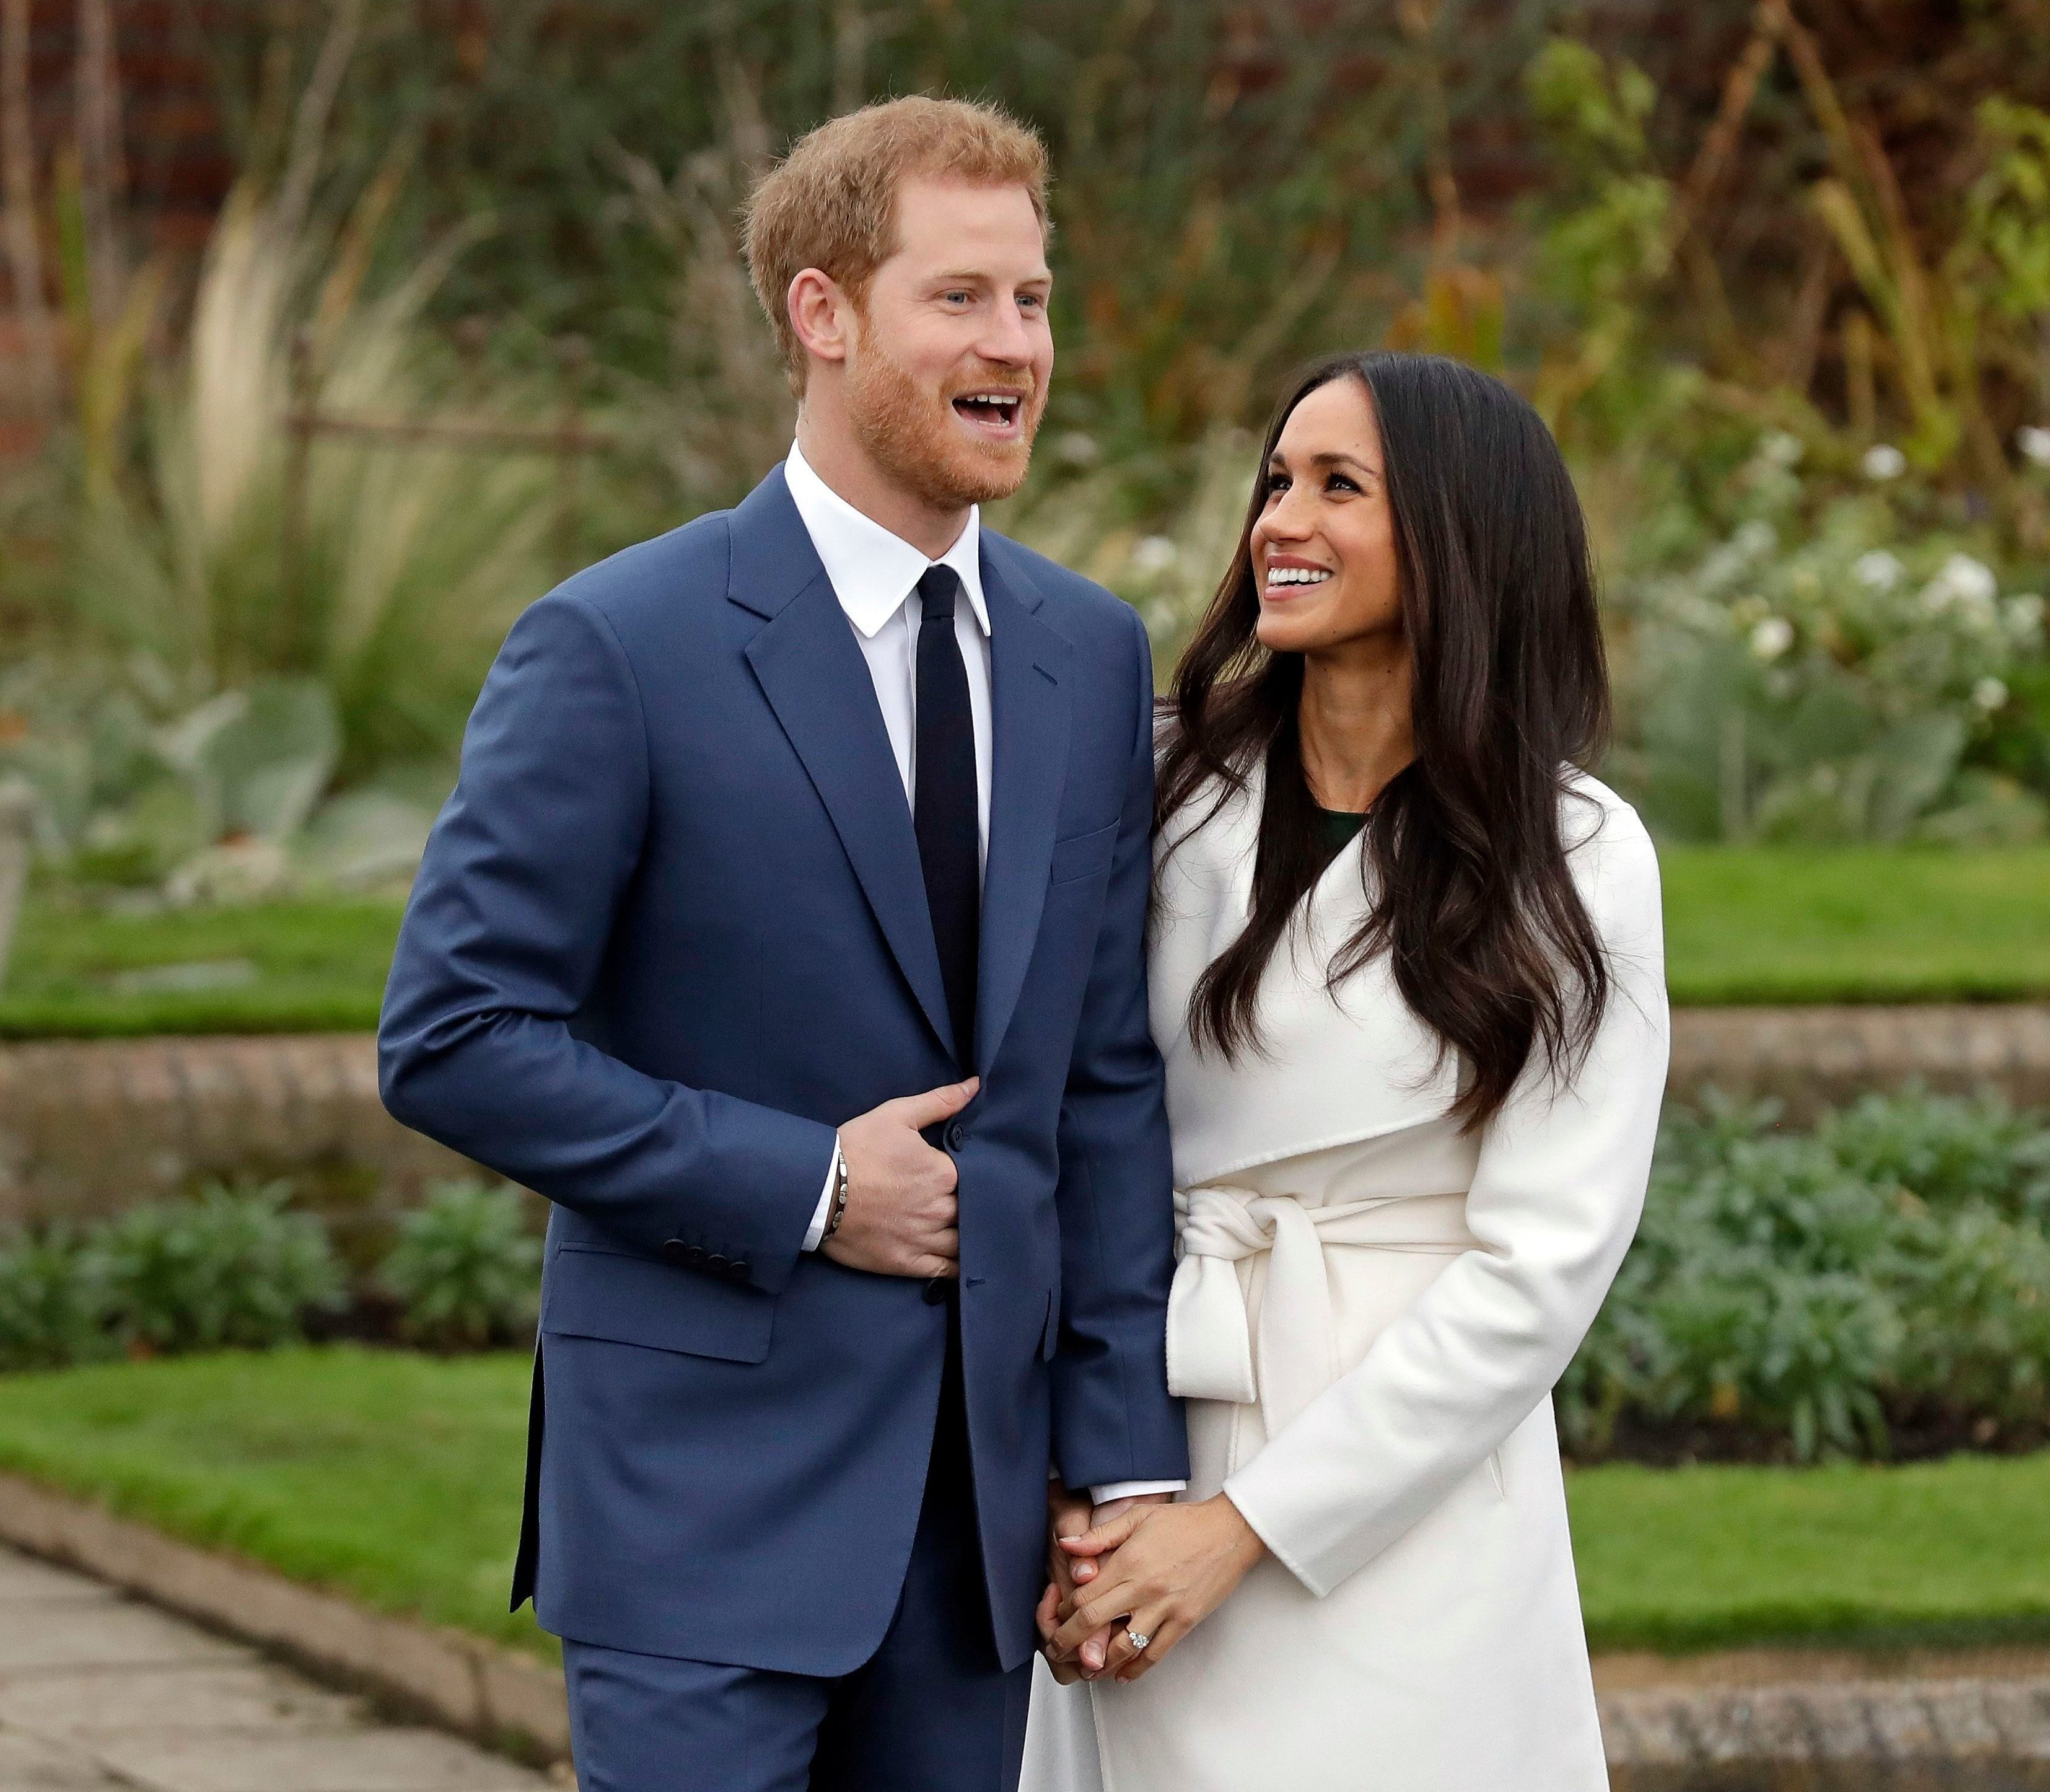 Mandatory Credit: Photo by AP/Shutterstock (9243663x) Britain's Prince Harry and his fiancee Meghan Markle pose for photographers during a photocall in the grounds of Kensington Palace in London, . Britain's royal palace says Prince Harry and actress Meghan Markle are engaged and will marry in the spring of 2018 Britain Royal Engagement, London, United Kingdom - 27 Nov 2017